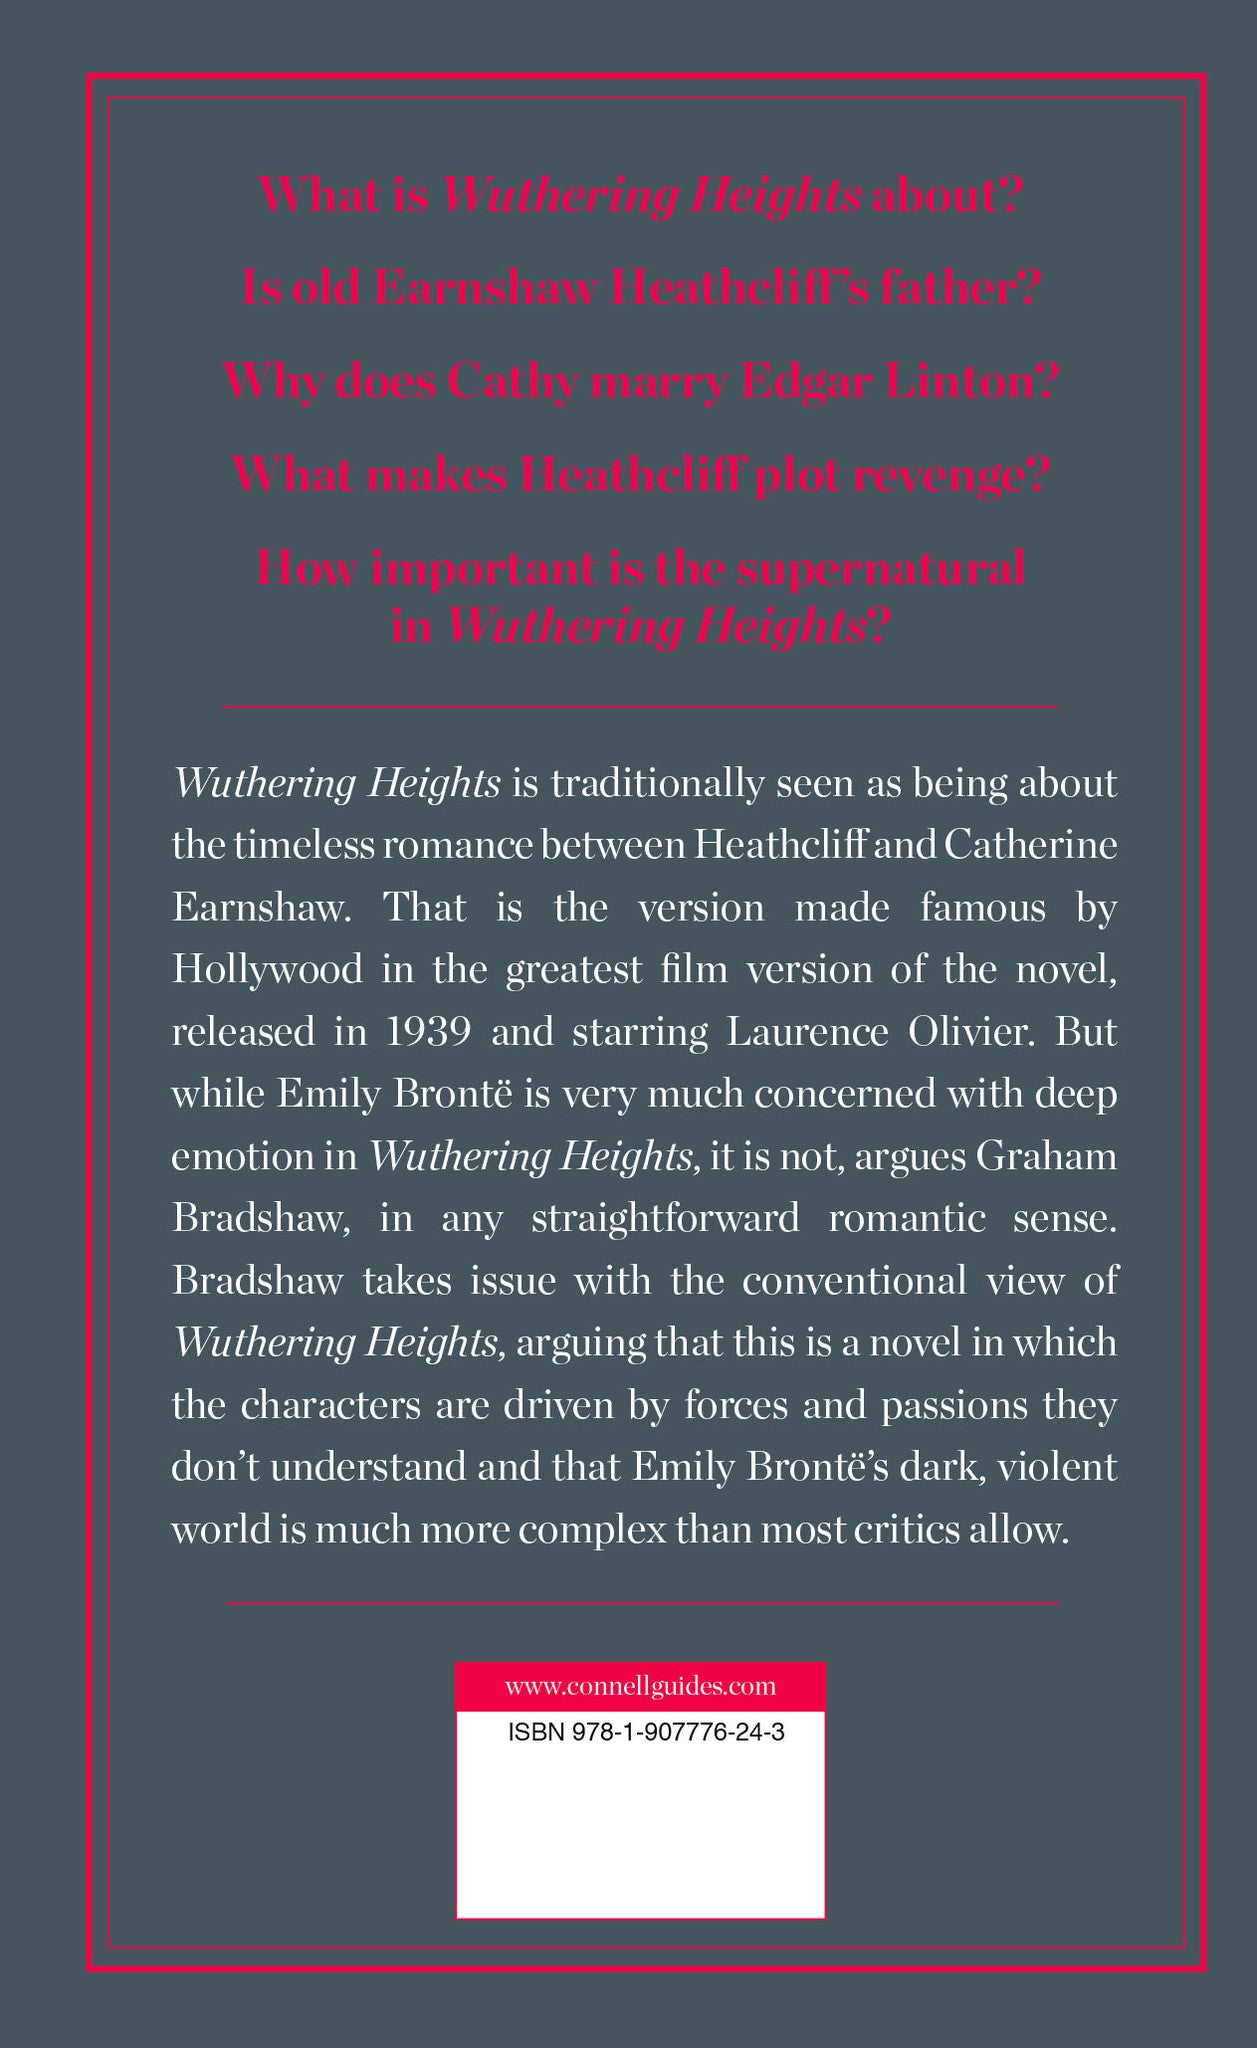 wuthering heights critical essays th grade honors gifted file  emily bront euml s wuthering heights study guide connell guides emily bronteuml s wuthering heights study